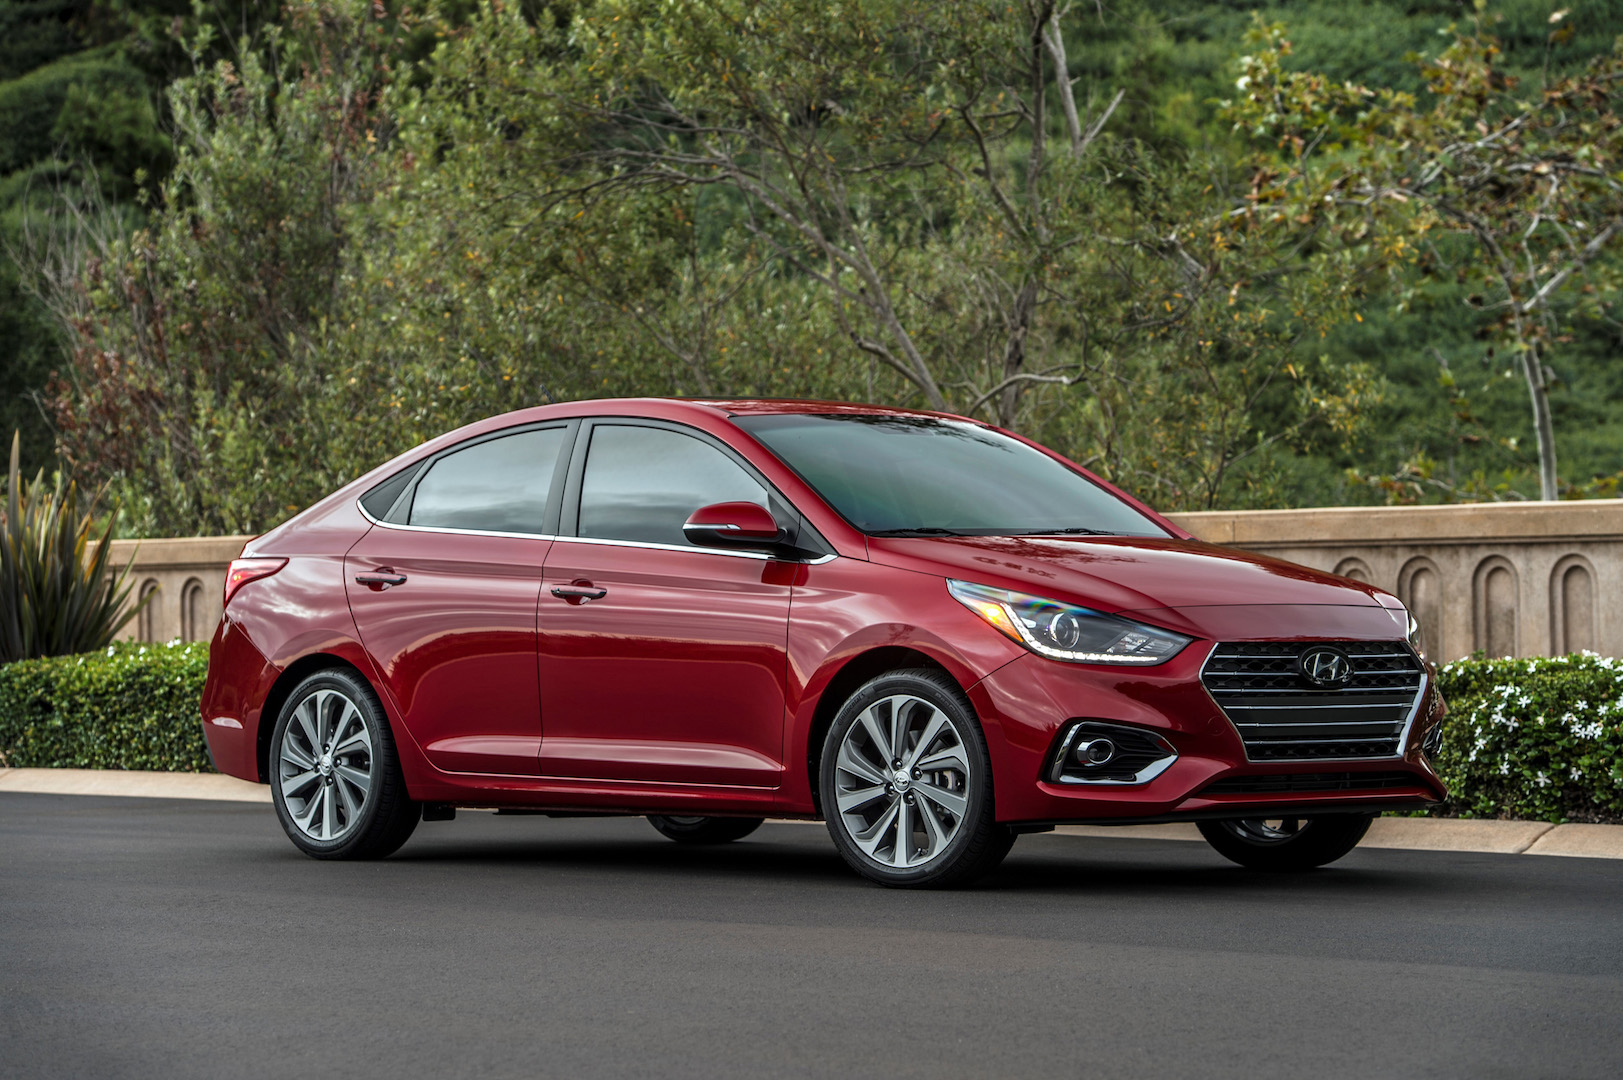 Imagenes De Autos Ultra Hd: 2019 Hyundai Accent Review, Ratings, Specs, Prices, And